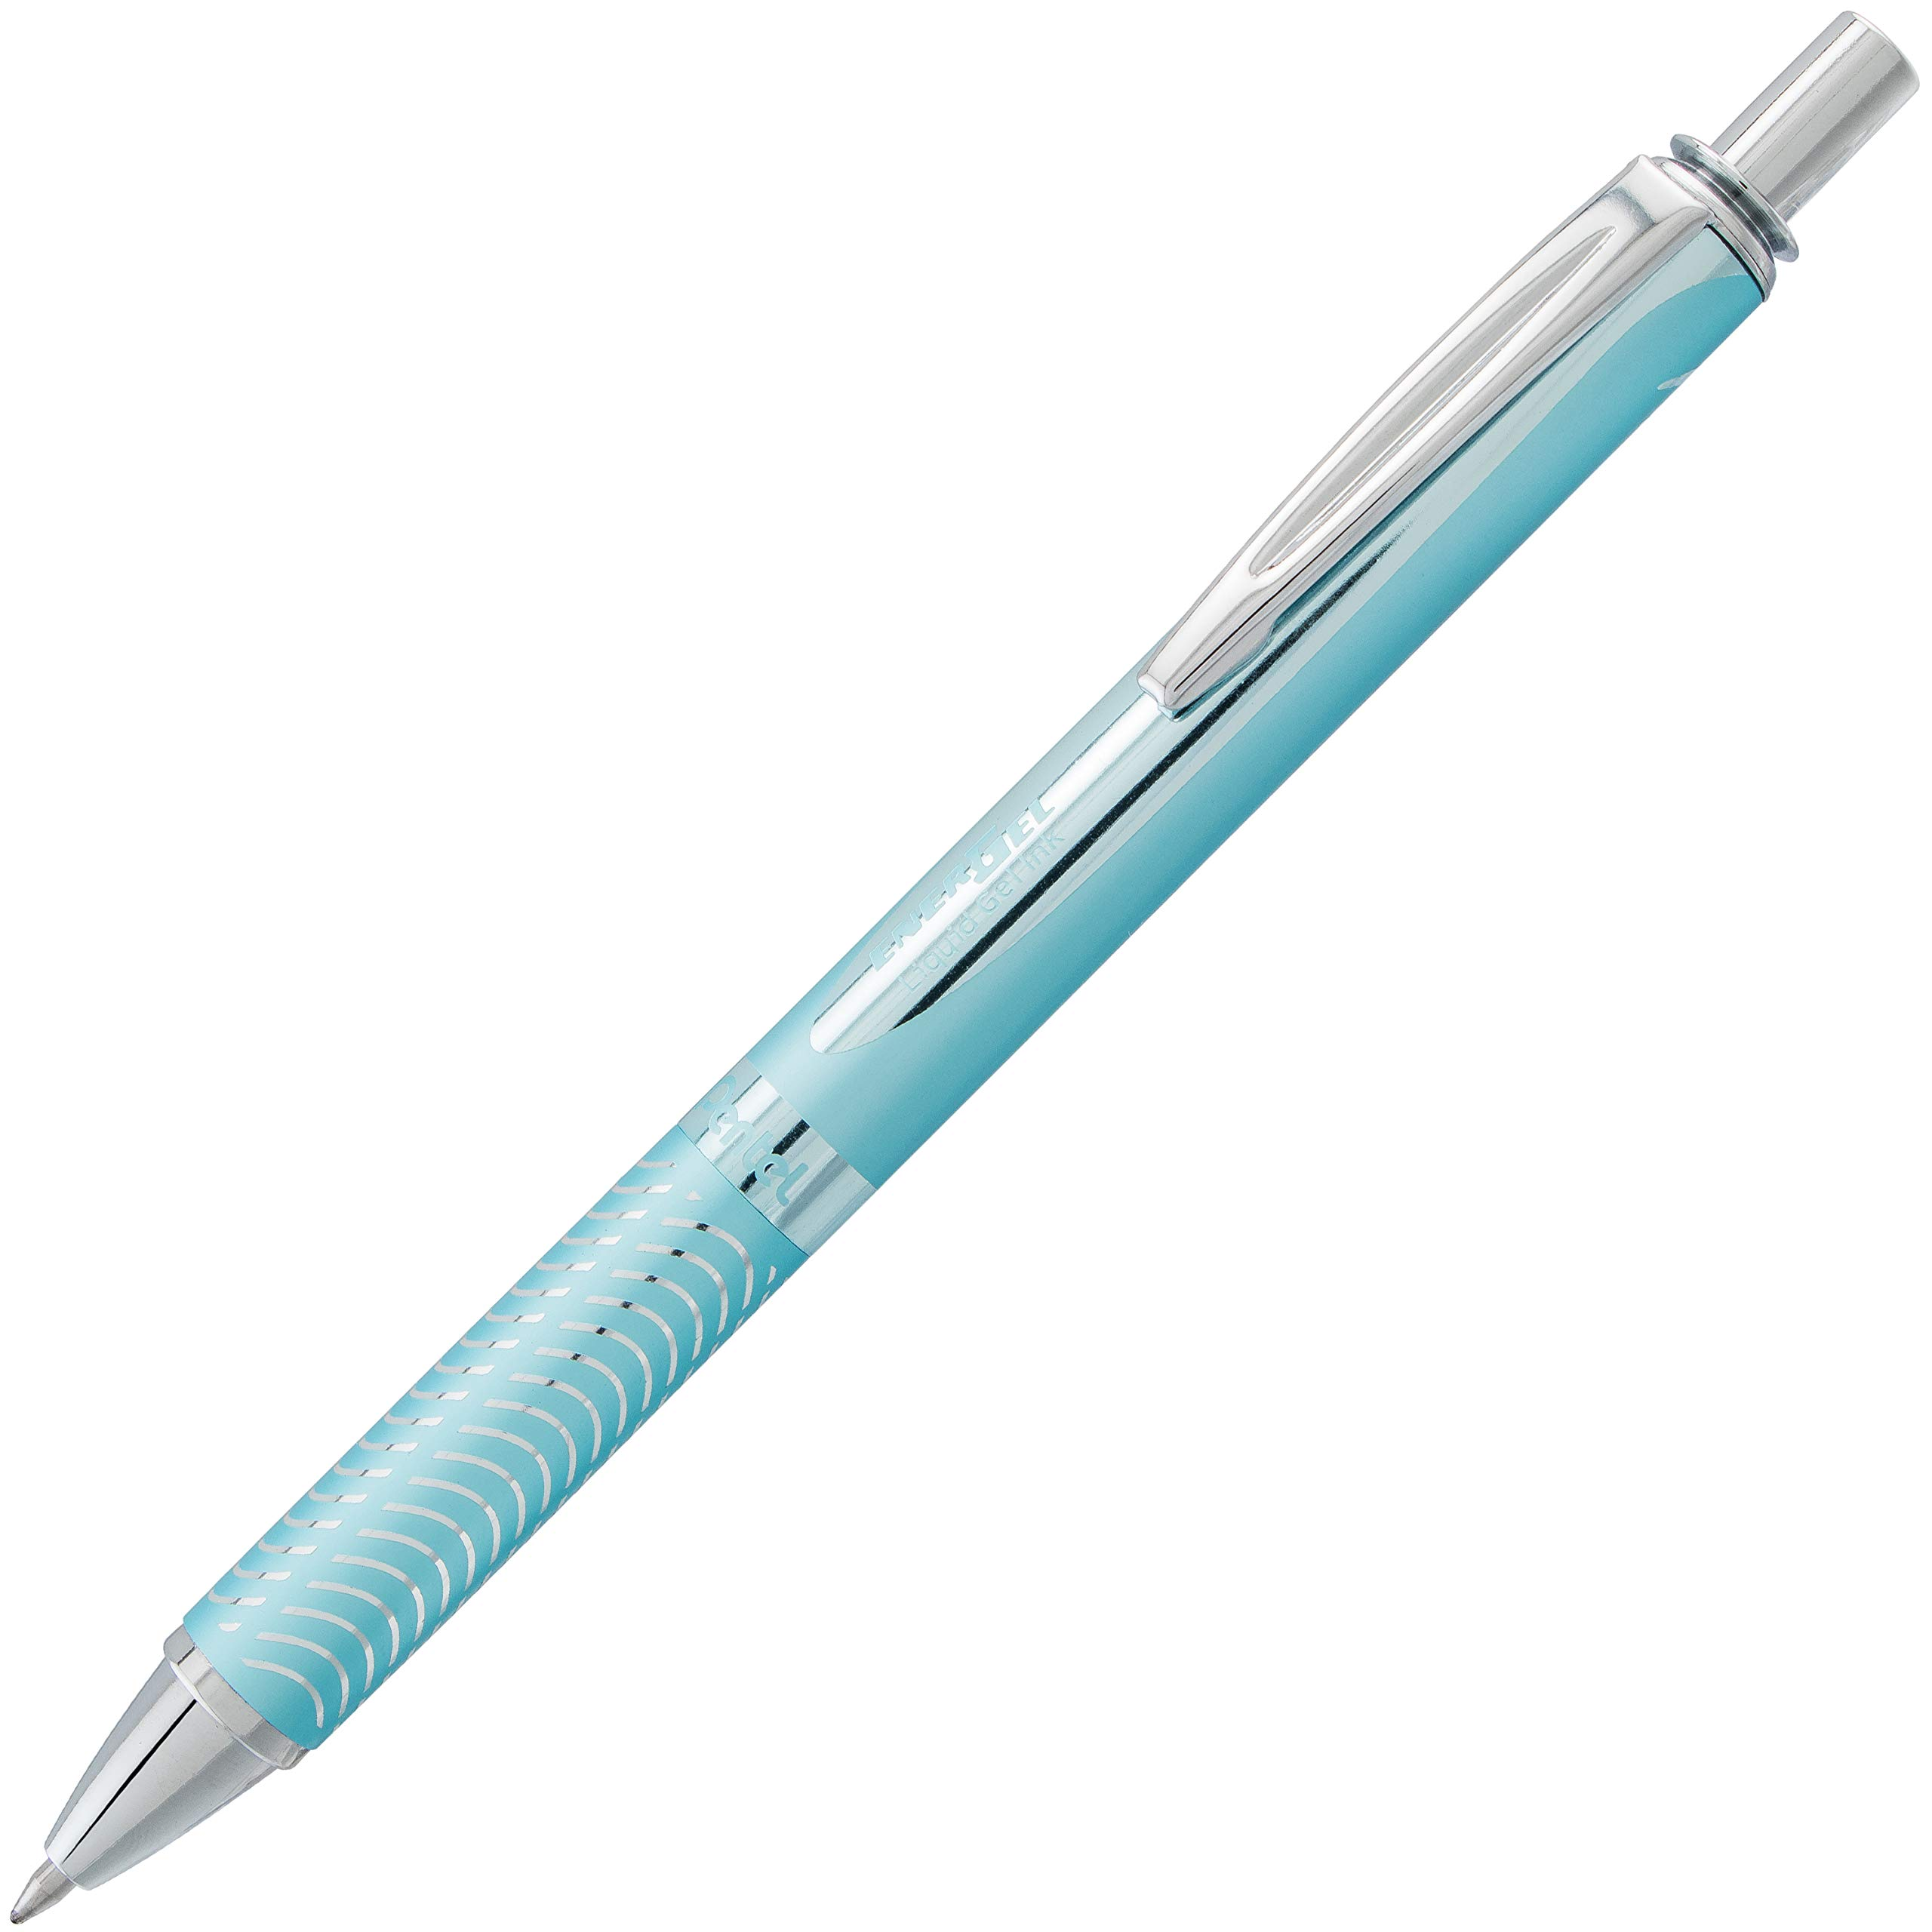 Pentel 0.7 mm Tip''EnerGel Sterling Black Ink'' Pen - Baby Blue (Pack of 12)